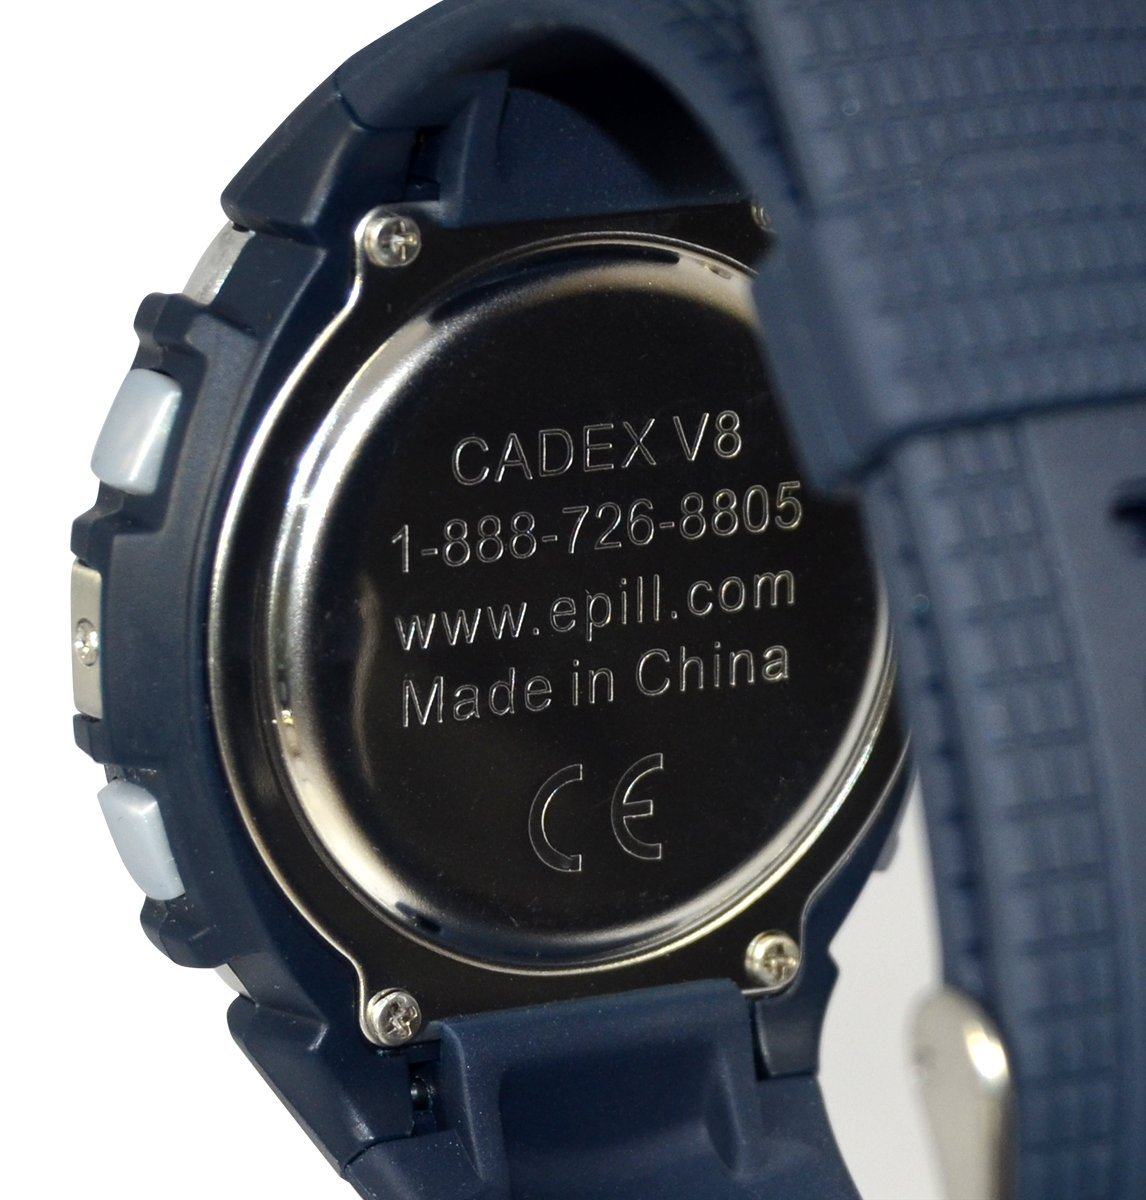 8 Alarm Vibration Alarm Watch e-pill CADEX V8. Vibrating Reminder Watch with Vibration, Beep, or BOTH Alarms. Long Alarm Duration. by e-pill Medication Reminders (Image #5)